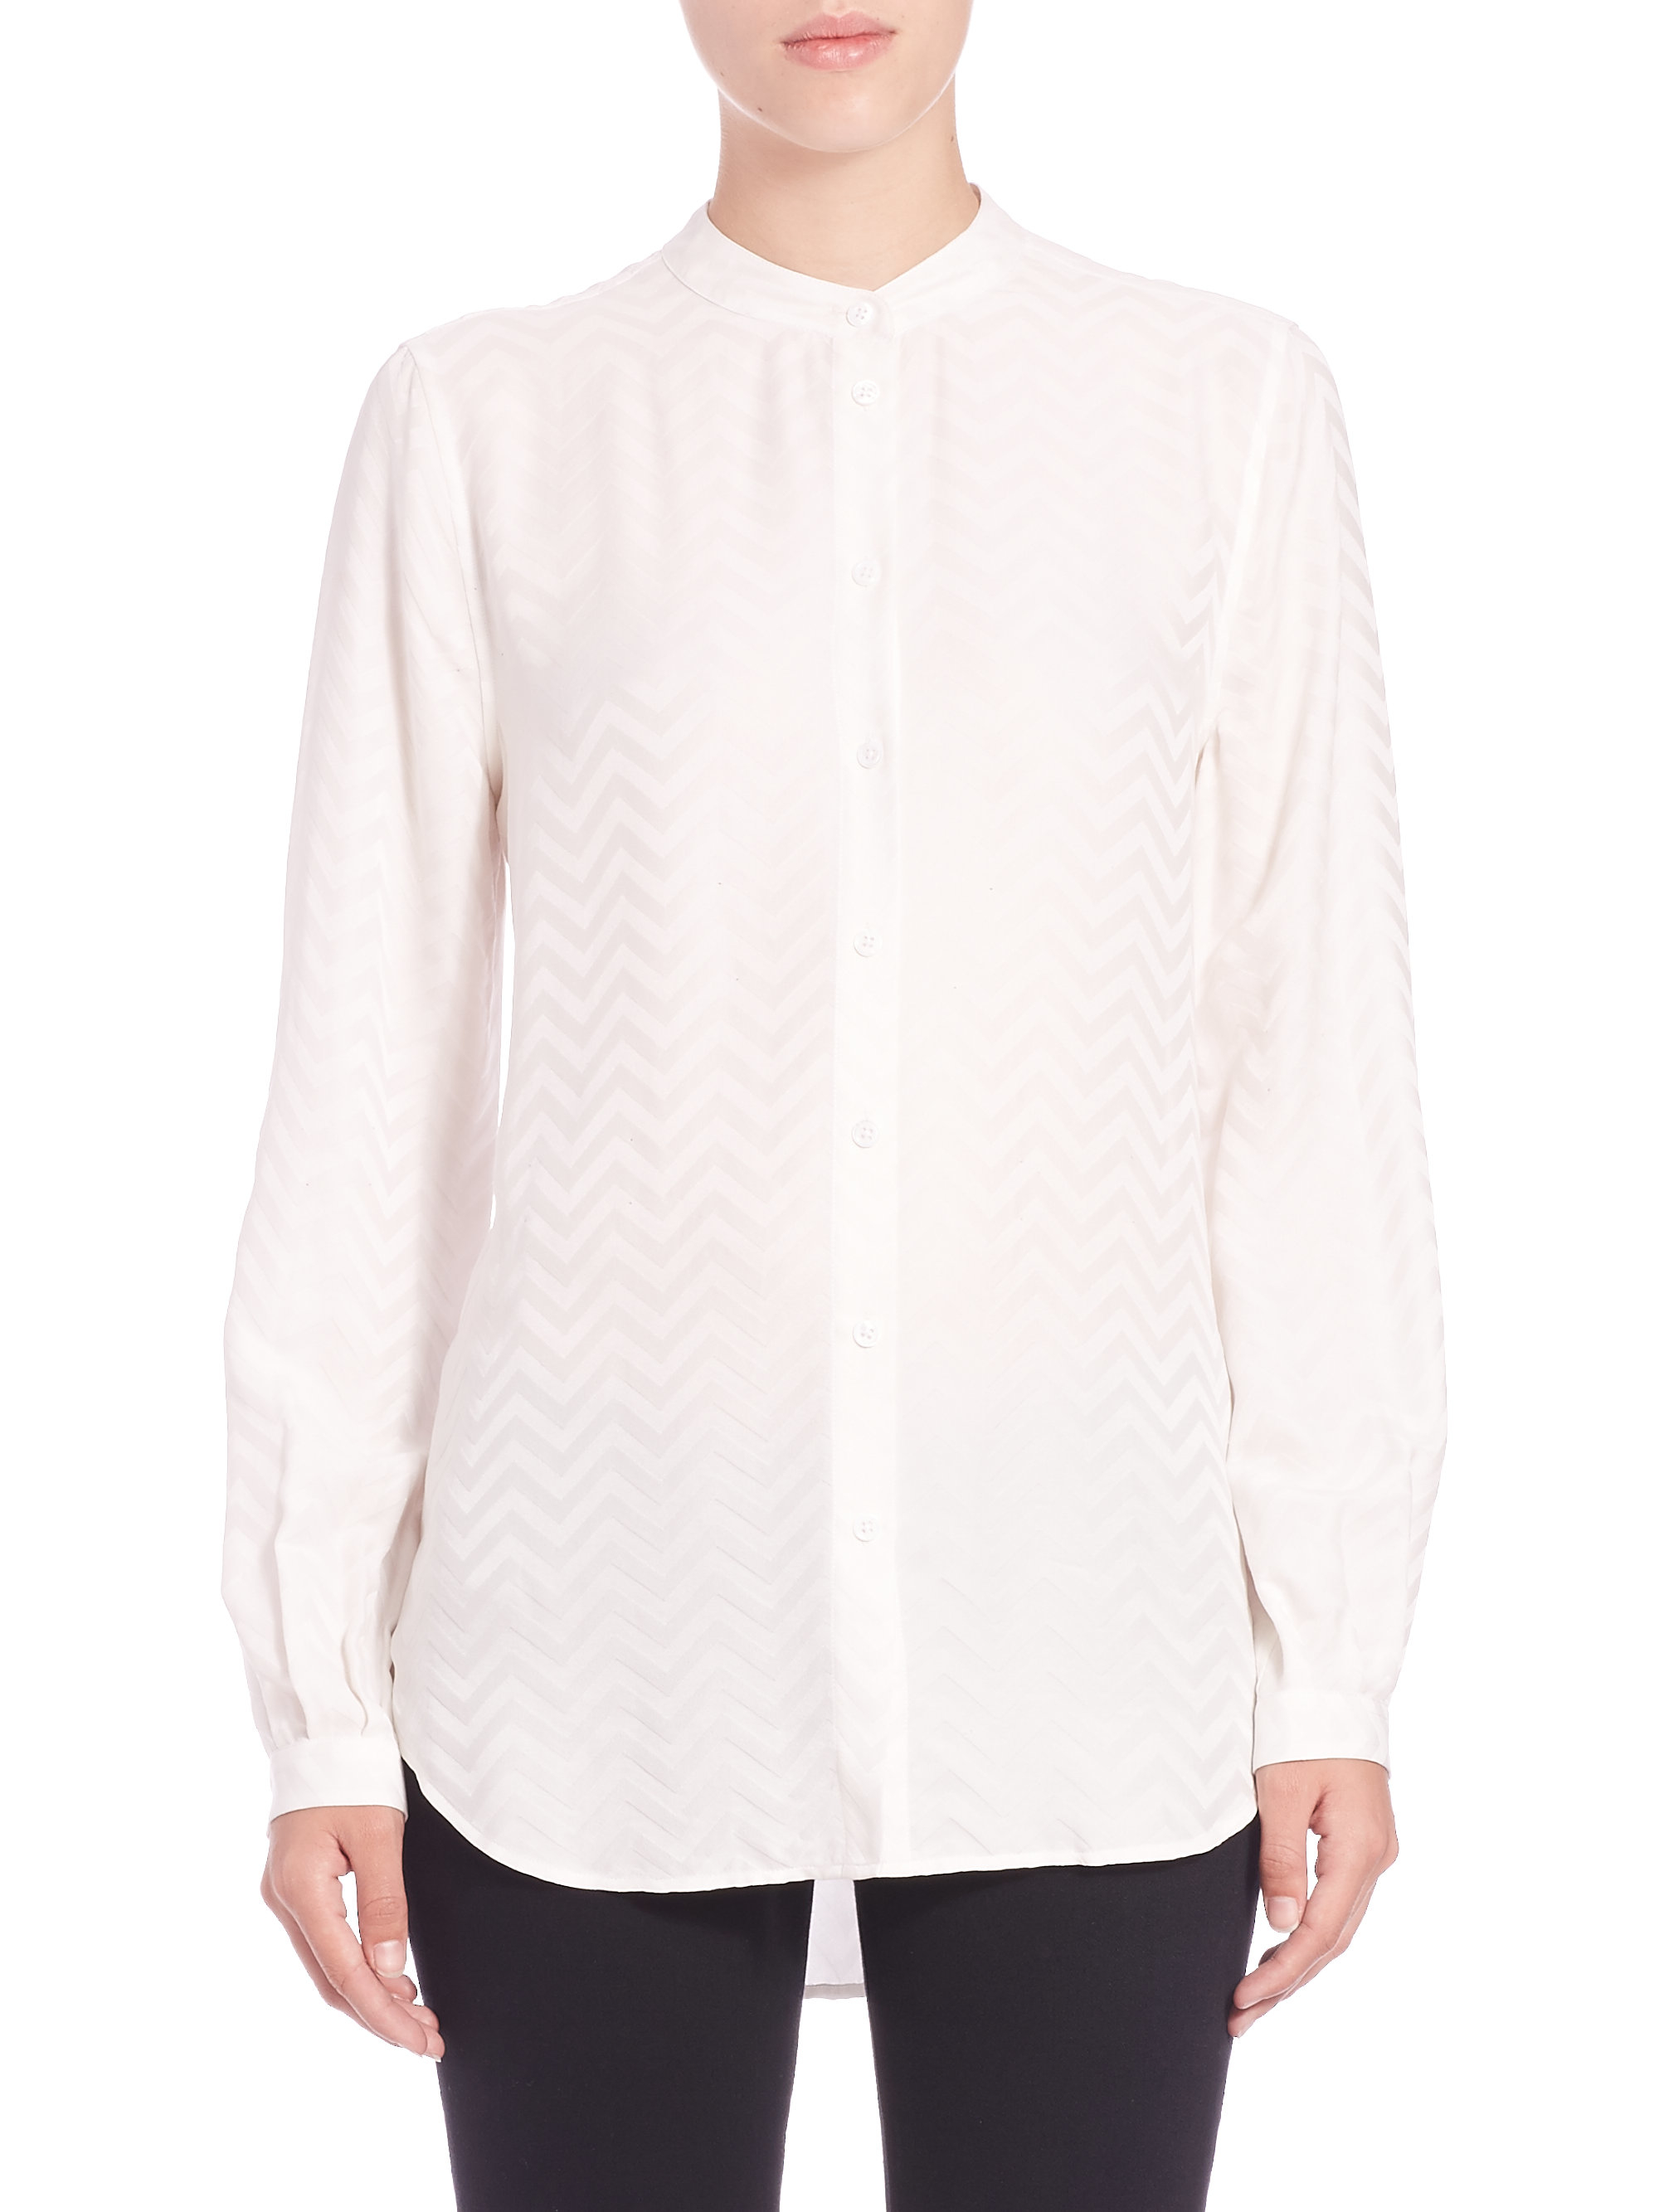 c75f524a57467 Equipment Womens Silk Blouses - Image Of Blouse and Pocket